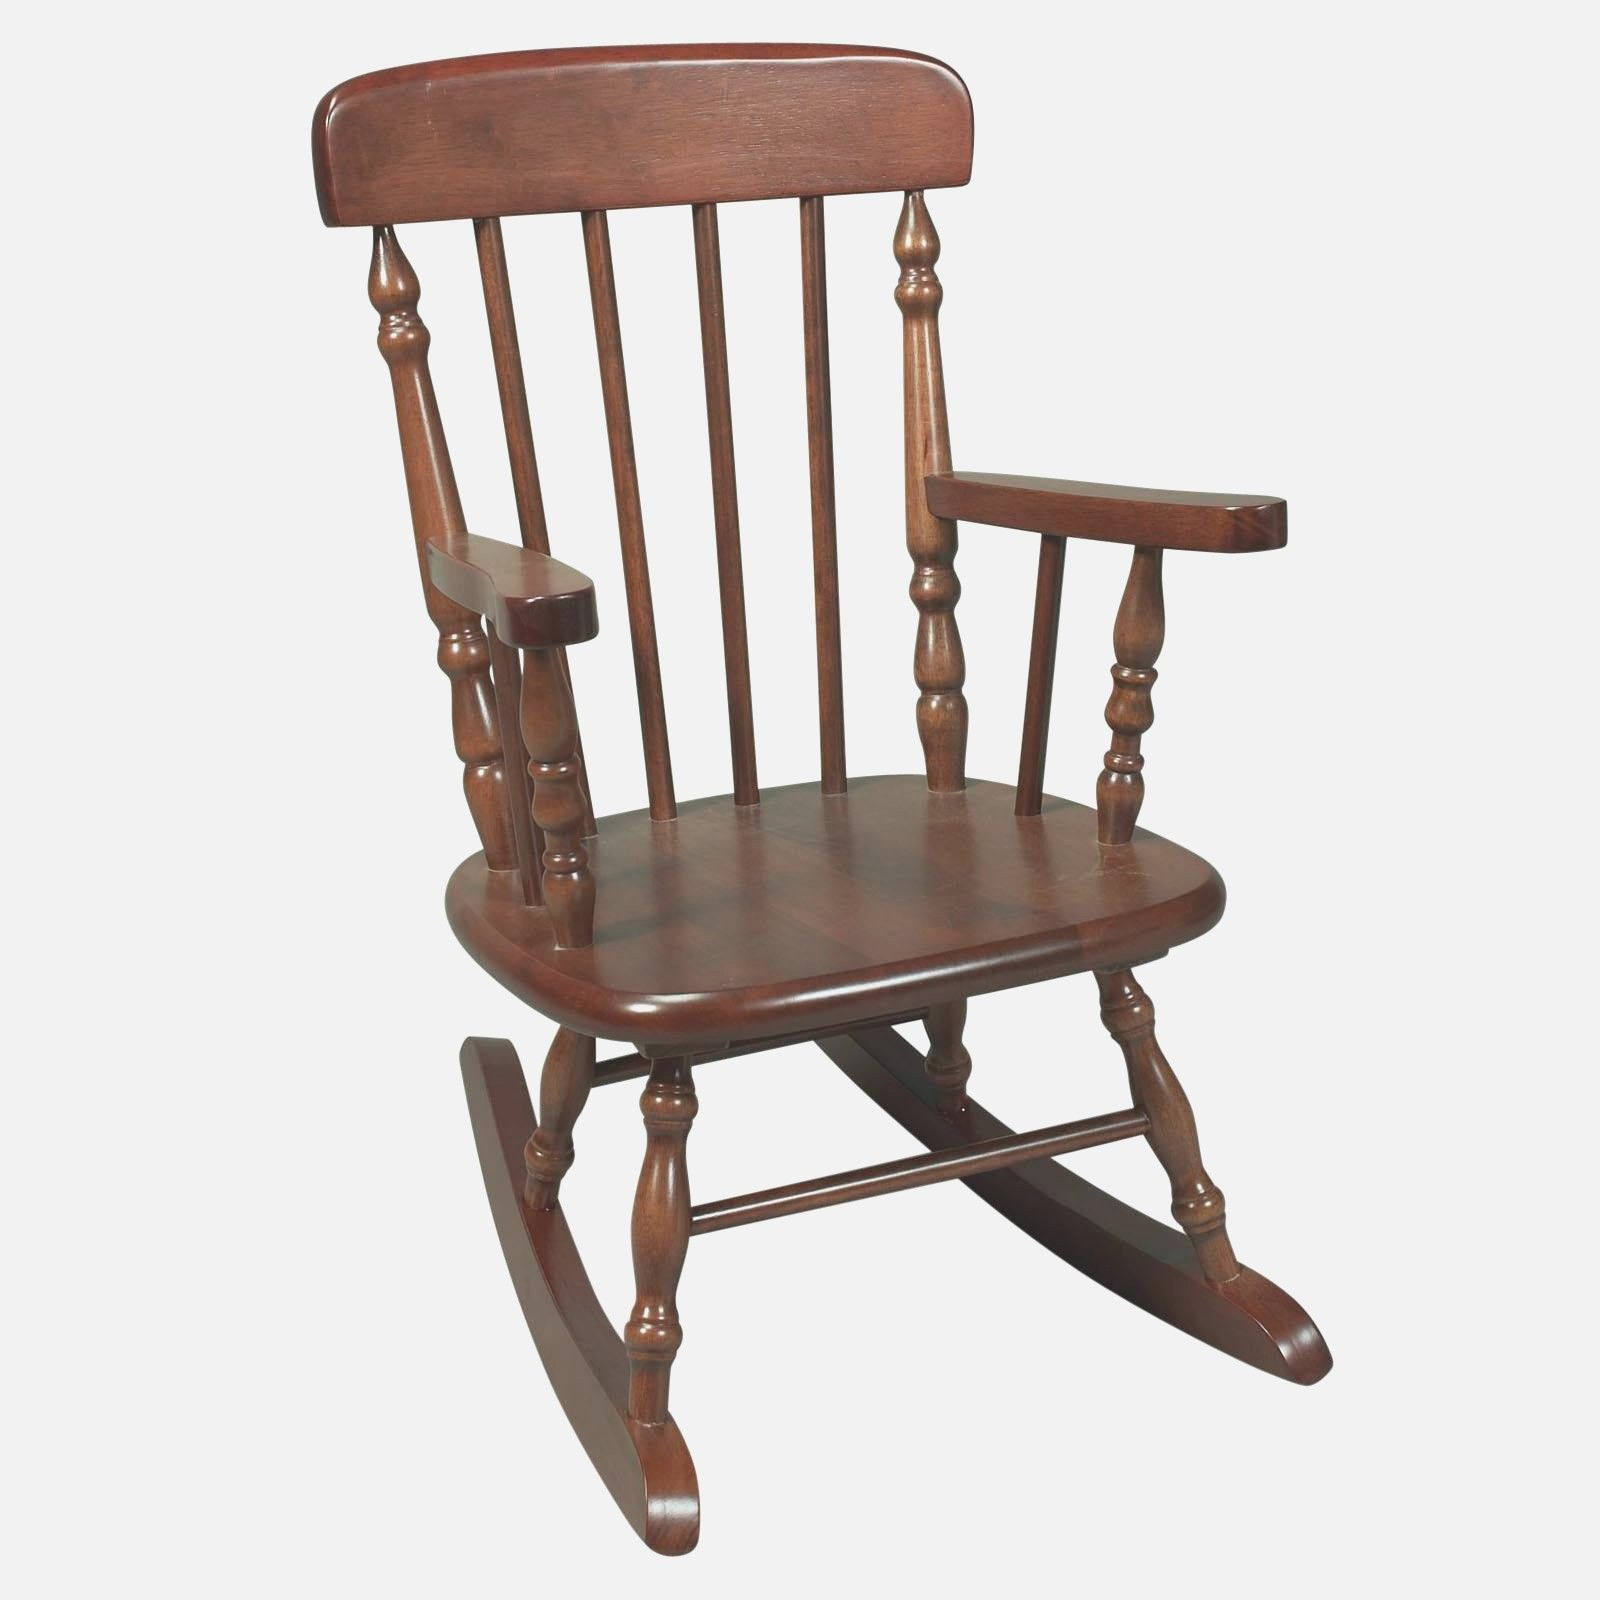 Wooden Rocking Chairs For Adults Indoor Wheelchair Adalah Black Chair Heavy Duty